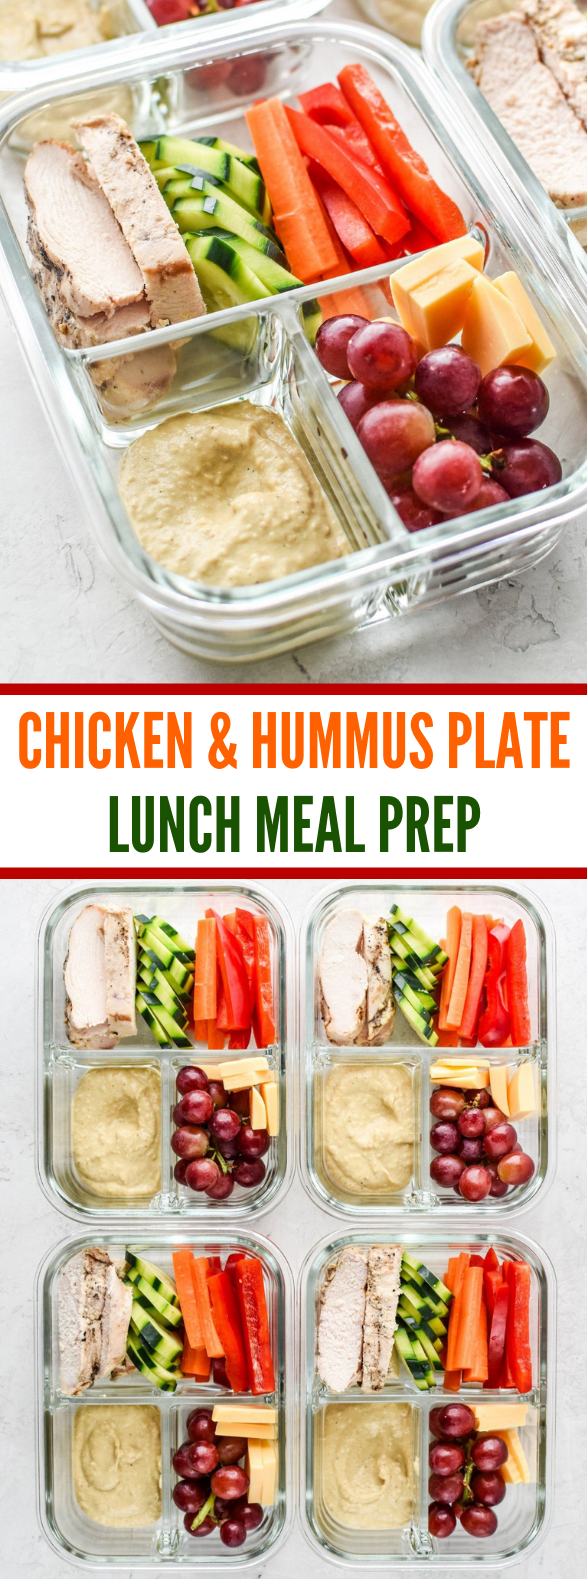 CHICKEN & HUMMUS PLATE LUNCH MEAL PREP #simplemeal #meals #mealprepplans CHICKEN & HUMMUS PLATE LUNCH MEAL PREP #simplemeal #meals #mealprep #veggies #lunch #mealprepplans